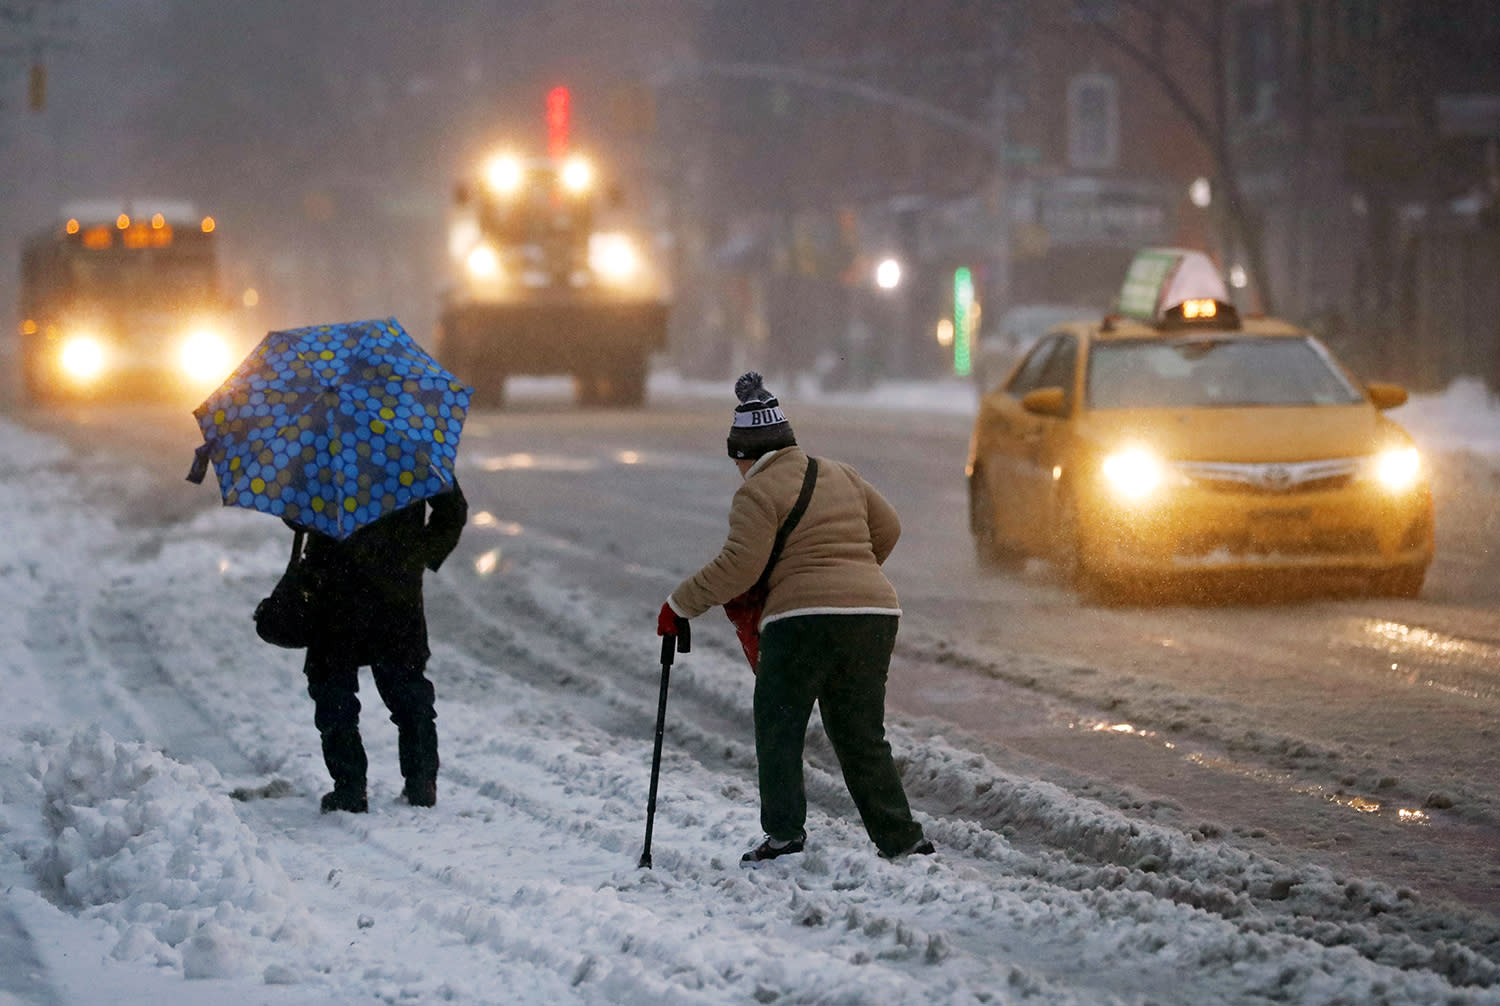 <p>Women try to cross a snow-covered street in New York, March 14, 2017. While New York and Boston had been issued a blizzard warning, that has been downgraded to a winter storm as the storm's track shifted resulting in a shift to rain for both cities and smaller forecast snowfall totals. (Jason Szenes/EPA) </p>